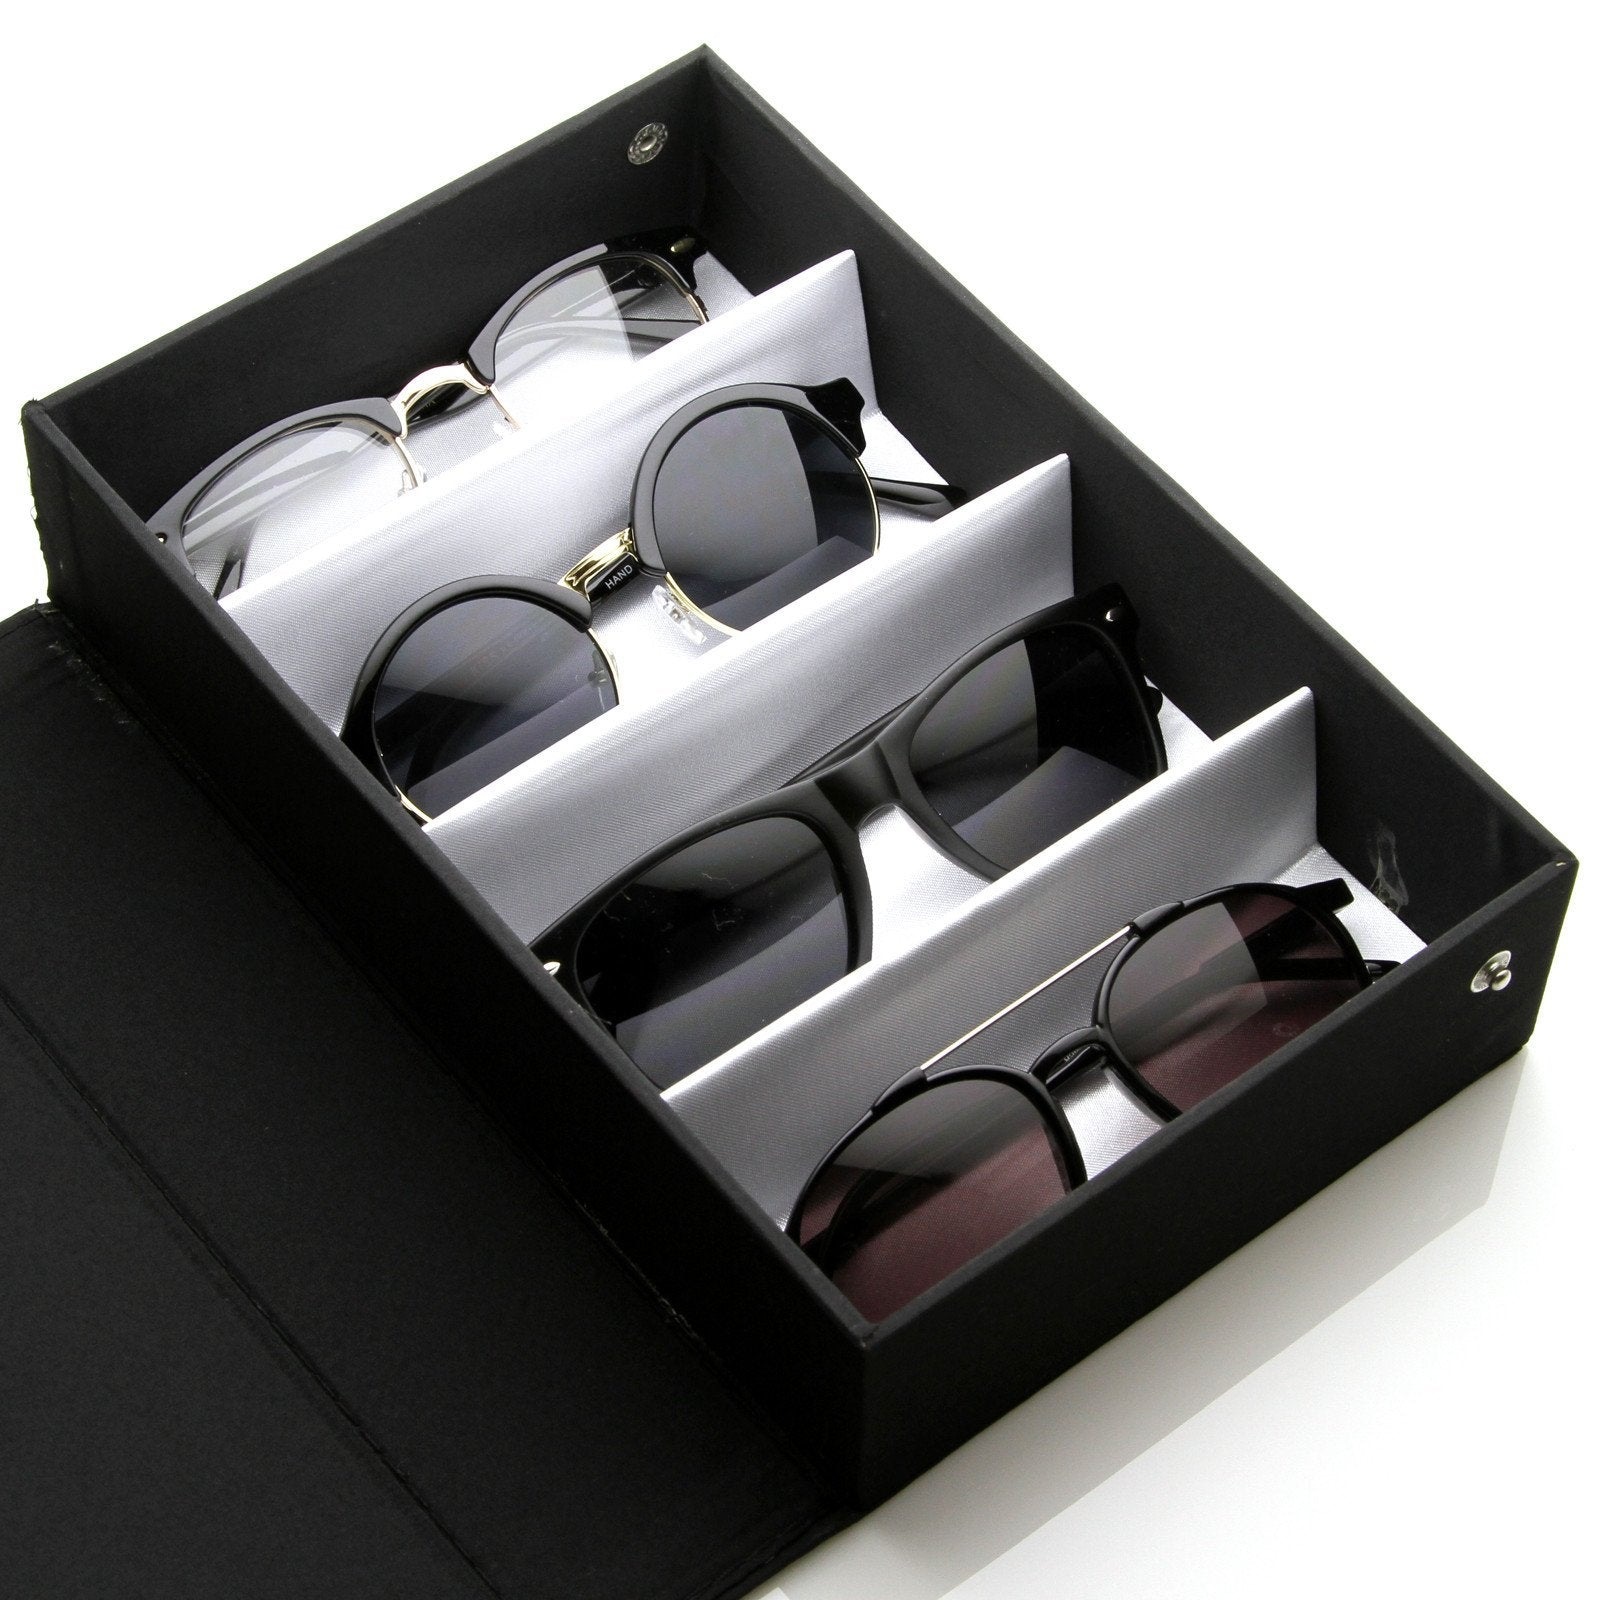 Vinyl Display Eye Wear Sunglasses Travel Carrying Case 4 Piece 1013